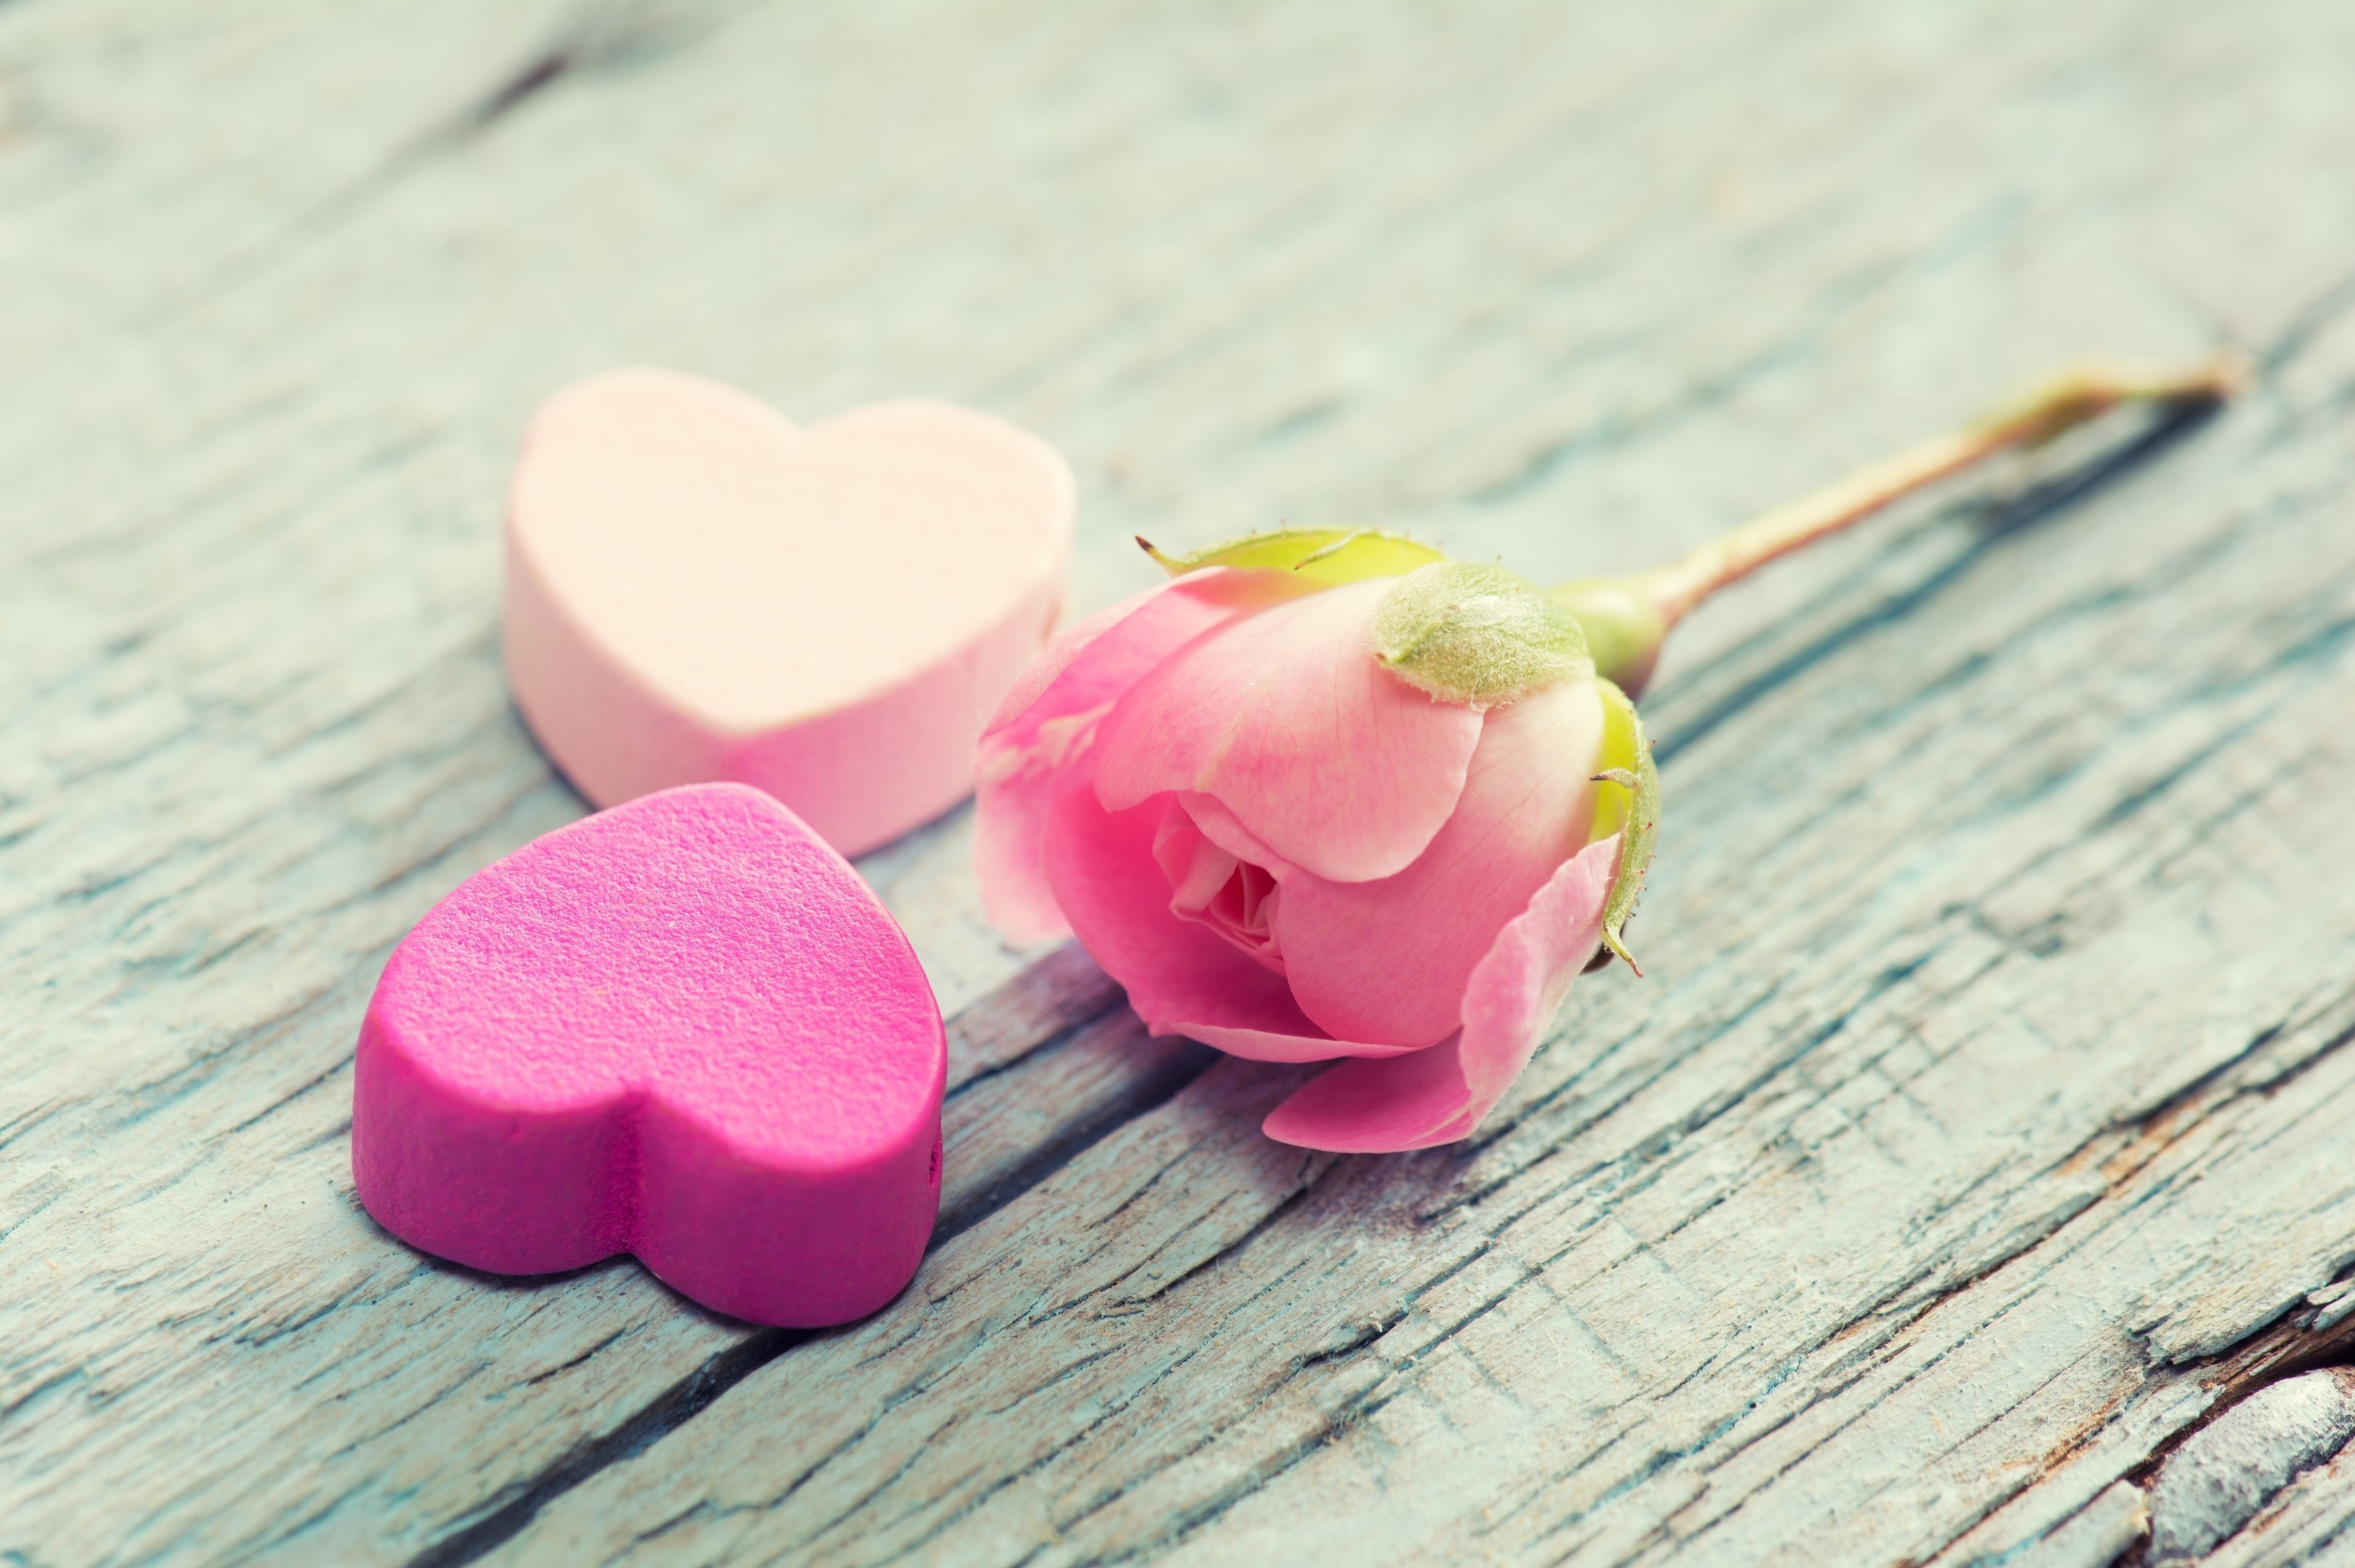 145484 download wallpaper Love, Heart, Flower, Tenderness, Pink screensavers and pictures for free